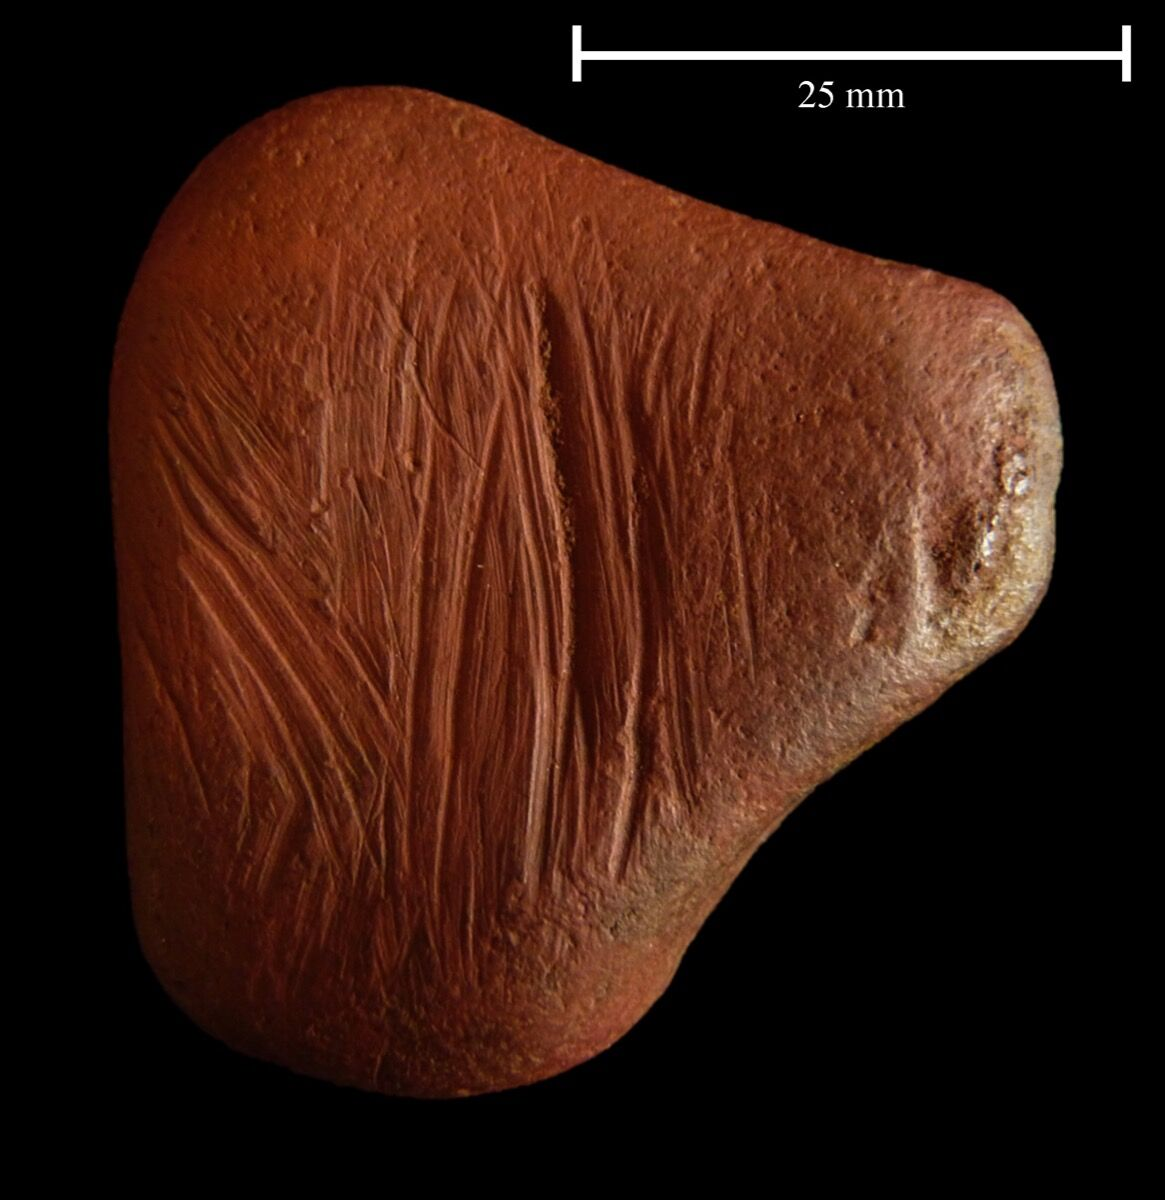 The surface may have been scratched to produce red powder. Courtesy of Paul Shields, University of York.